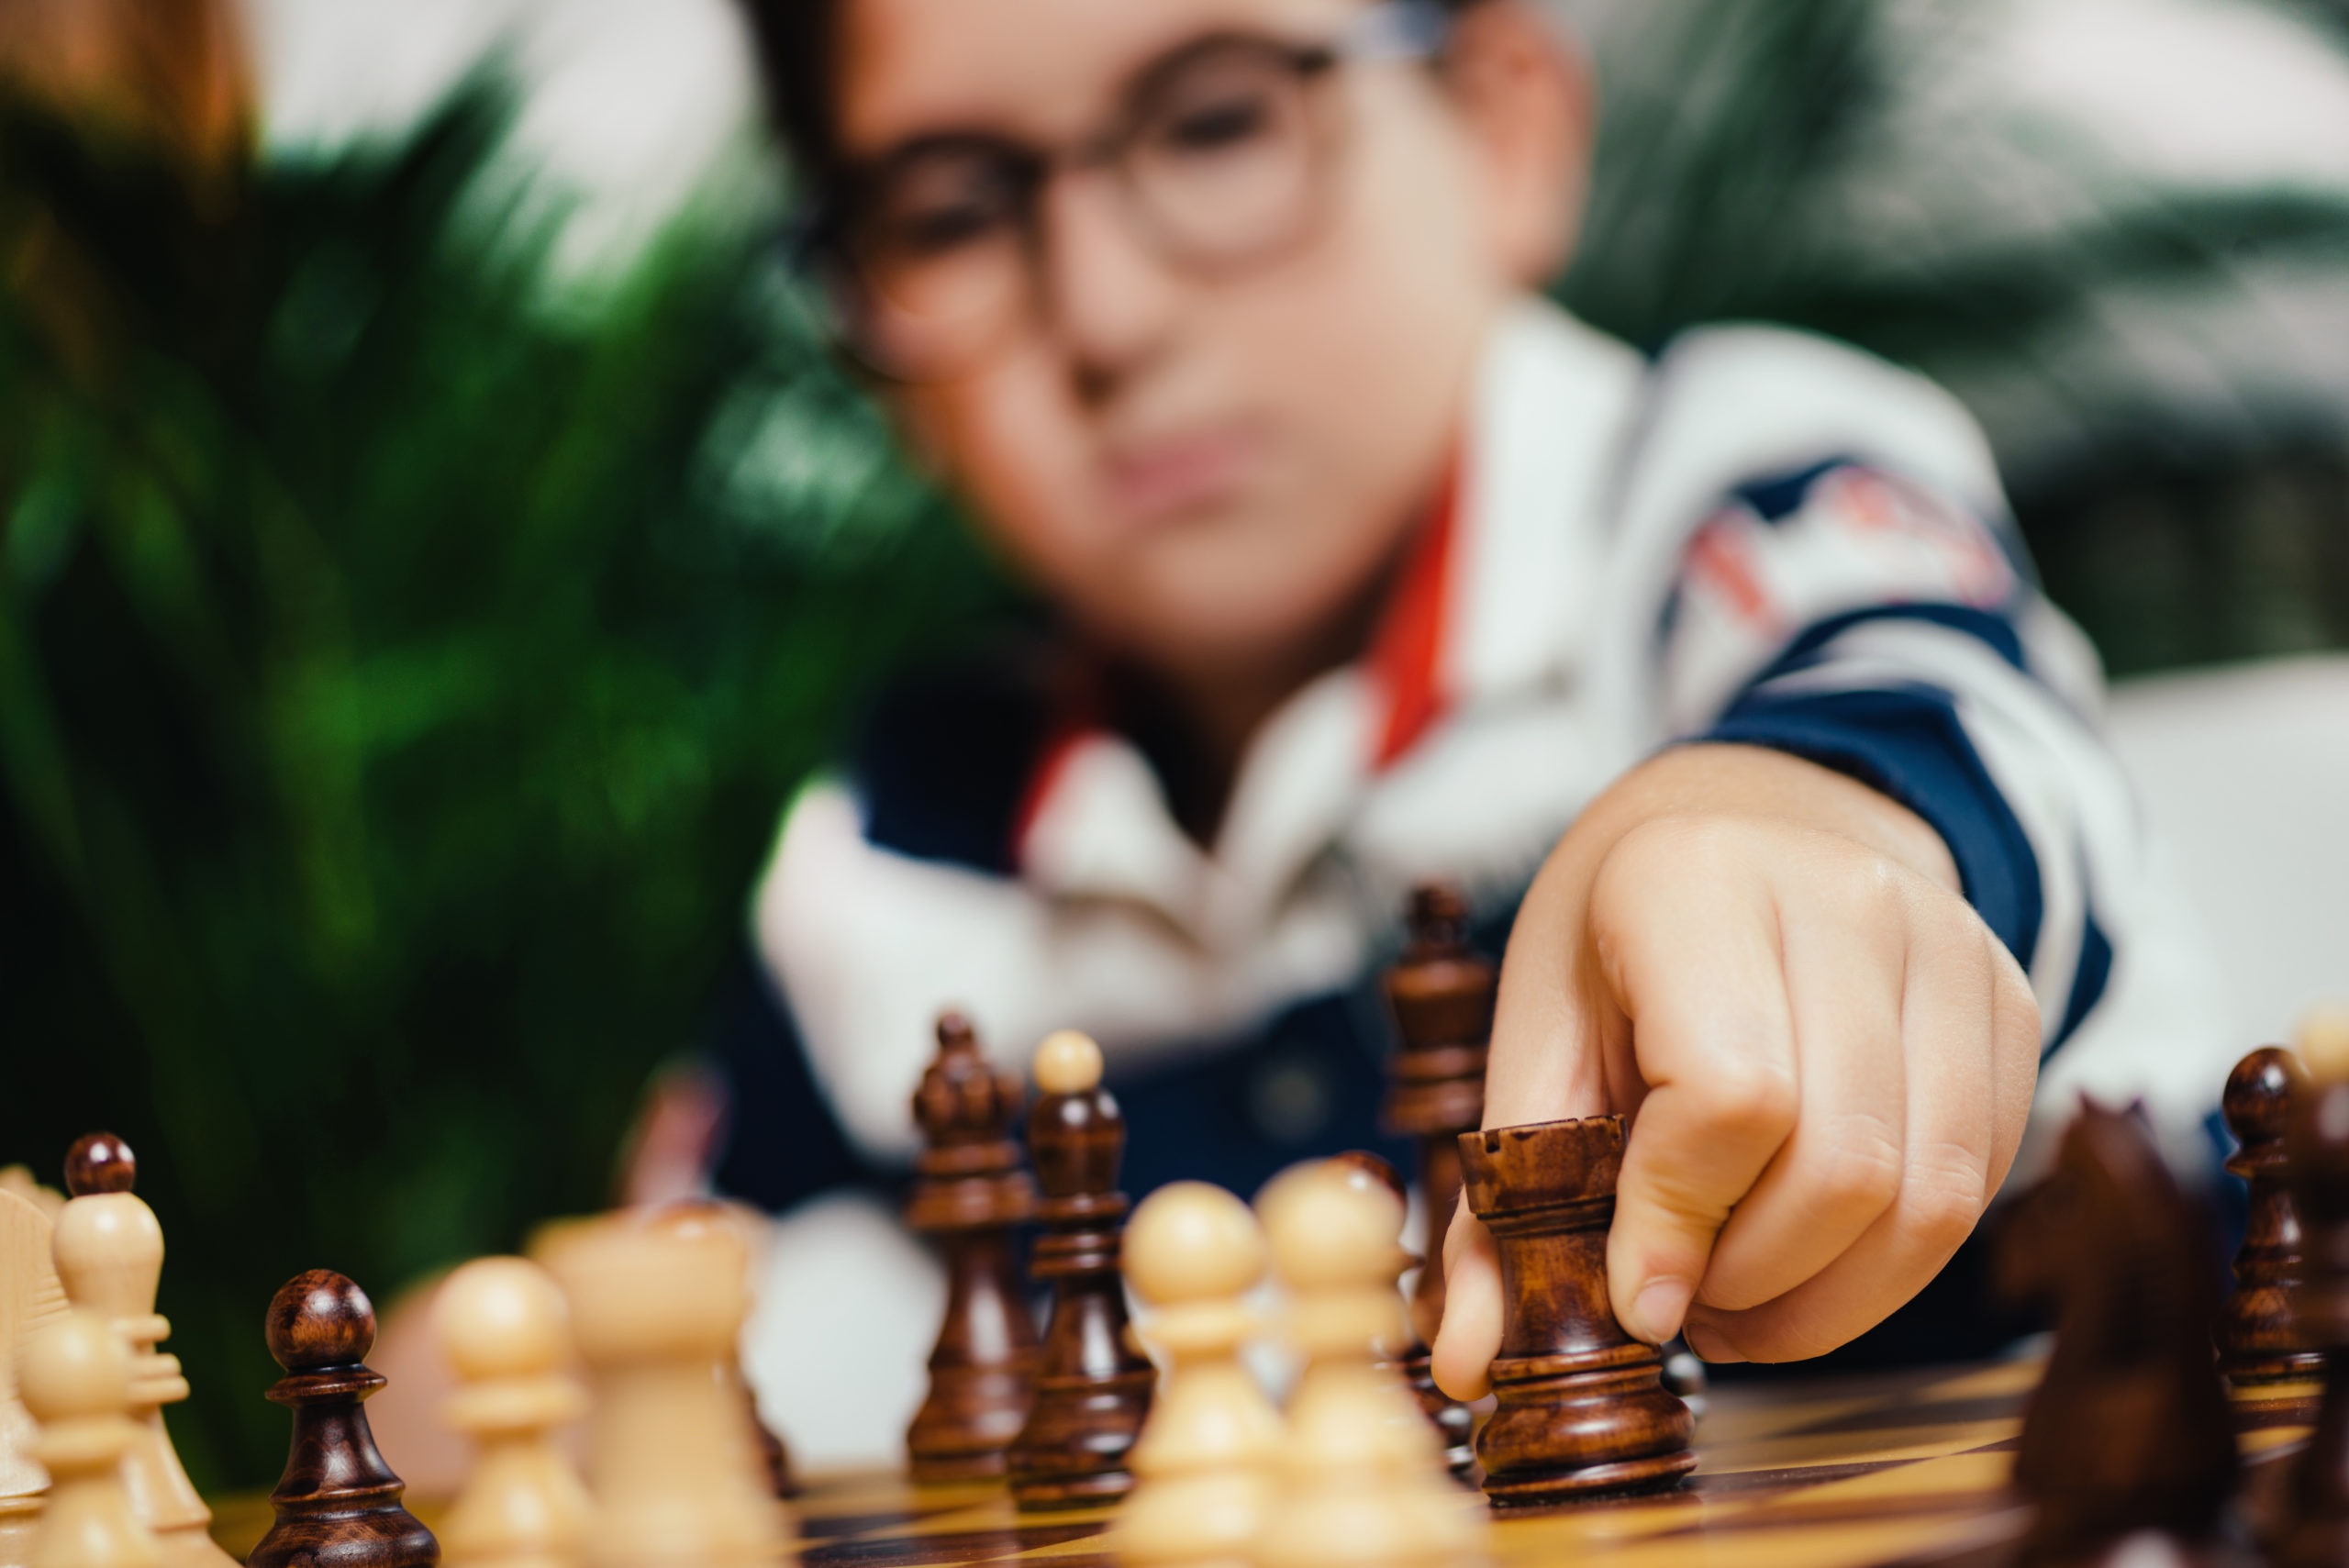 Boy playing chess at home. Sitting at the table and thinking hard.